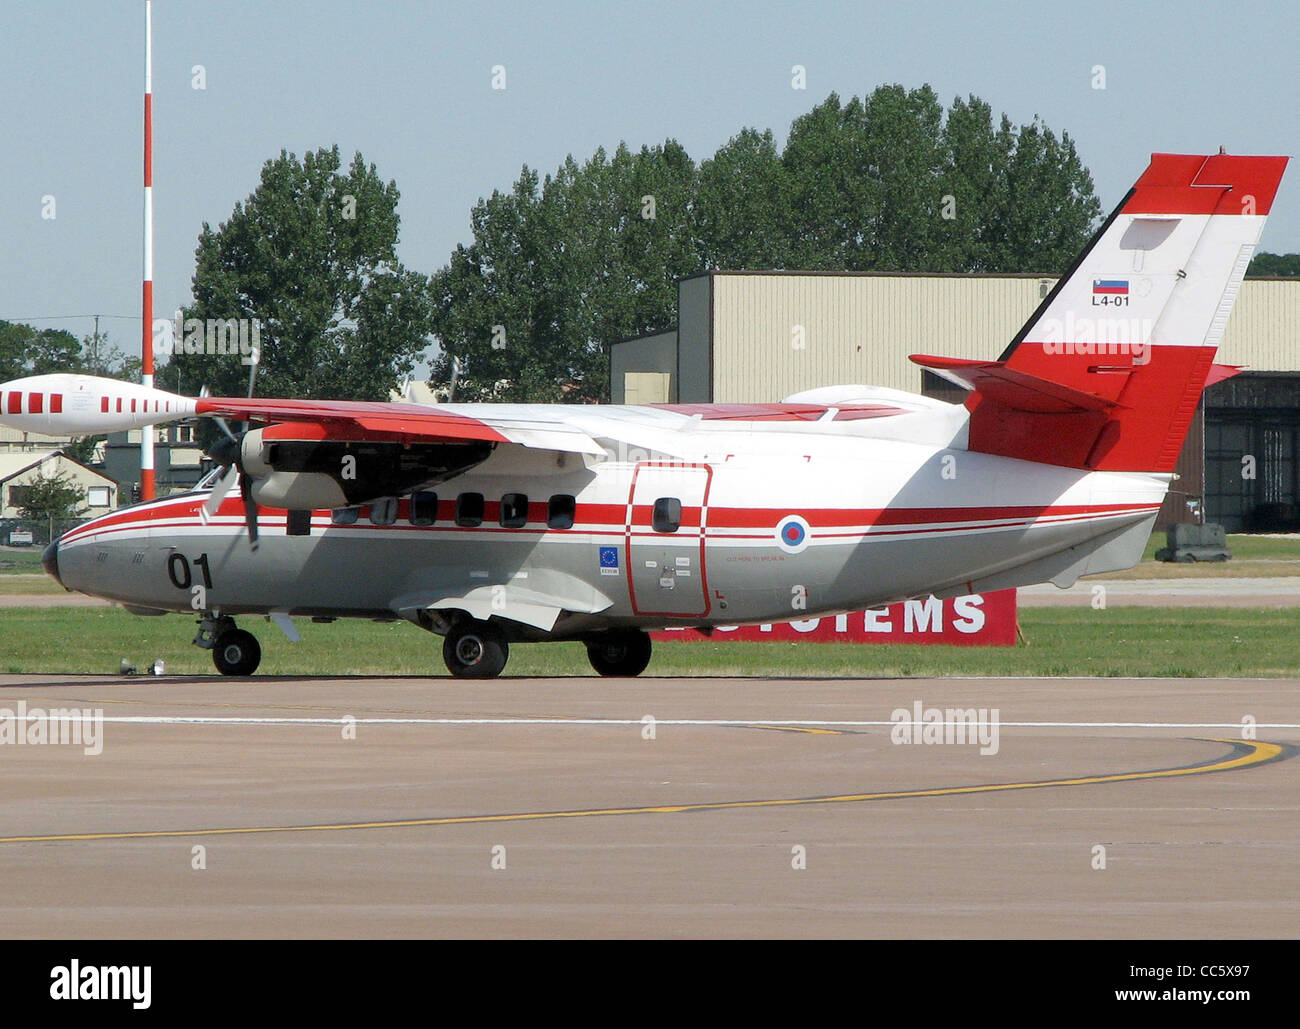 Let L-410UVP-E of the Slovenian Armed Forces (identifier L4-01) taxiing for take off at the Royal International - Stock Image